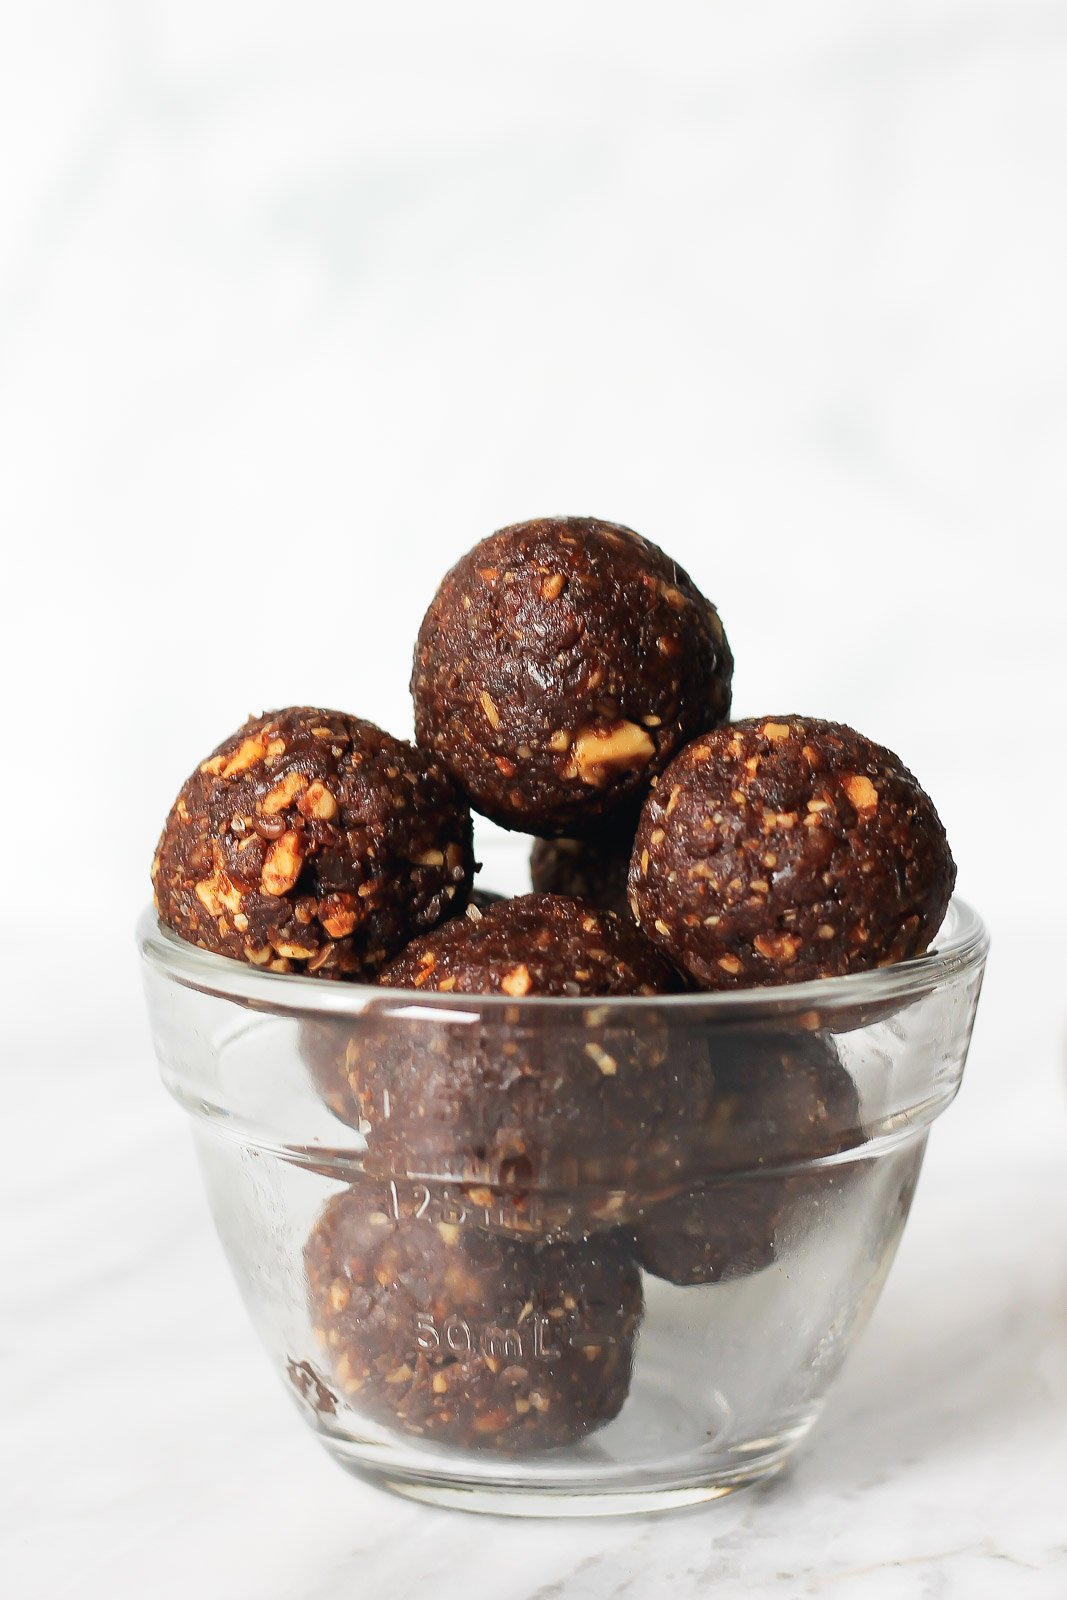 You're only 6 ingredients away from these salted date brownie energy bites. They taste just like a chewy, fudge brownie. Roll them in nuts or coconut for a 'truffle' version.